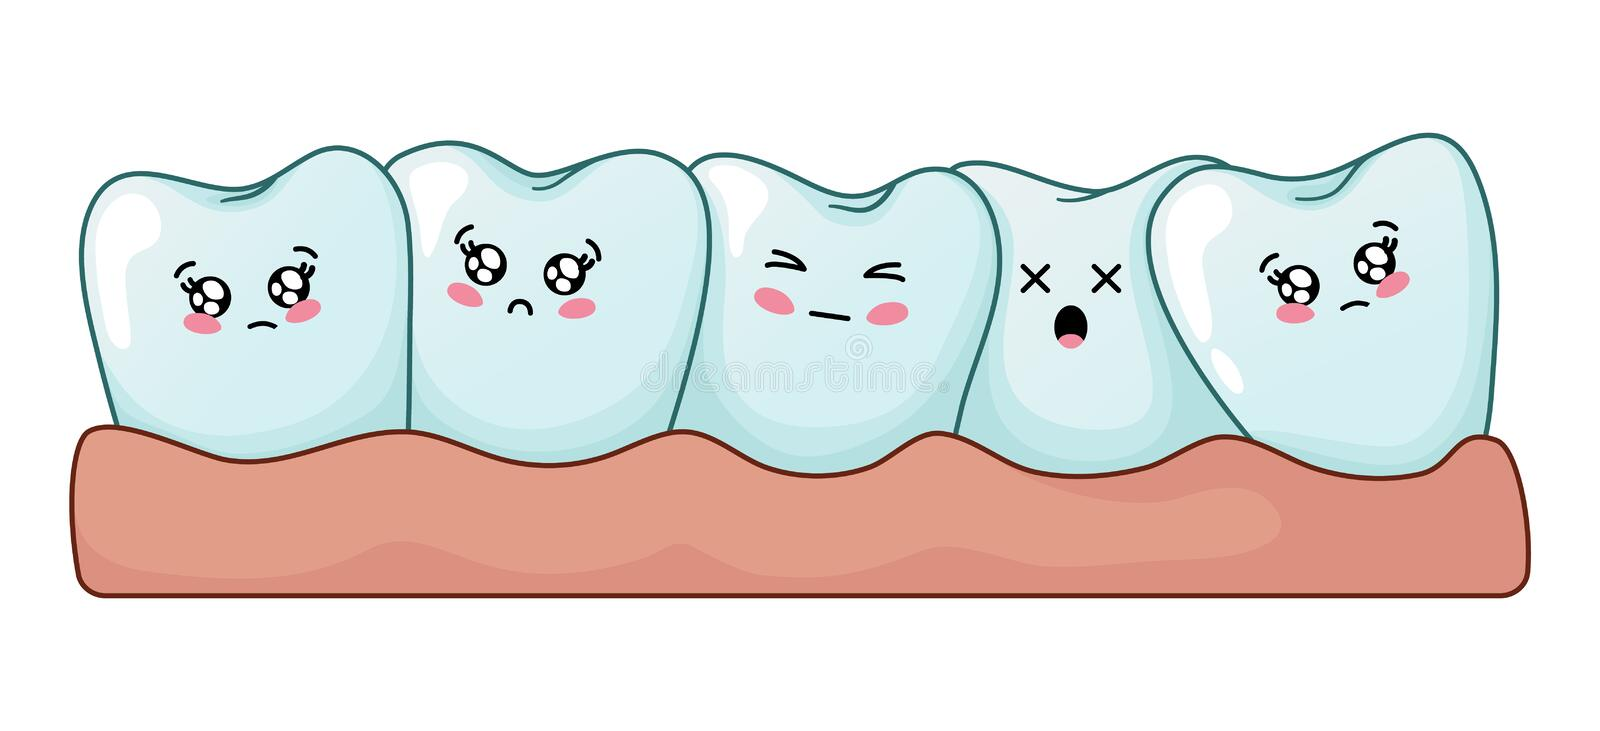 Kawaii dental care. Number of kawaii cartoon teeth together, problem of teeth curvature, sad cute characters on white background, concept of treatment, oral royalty free illustration